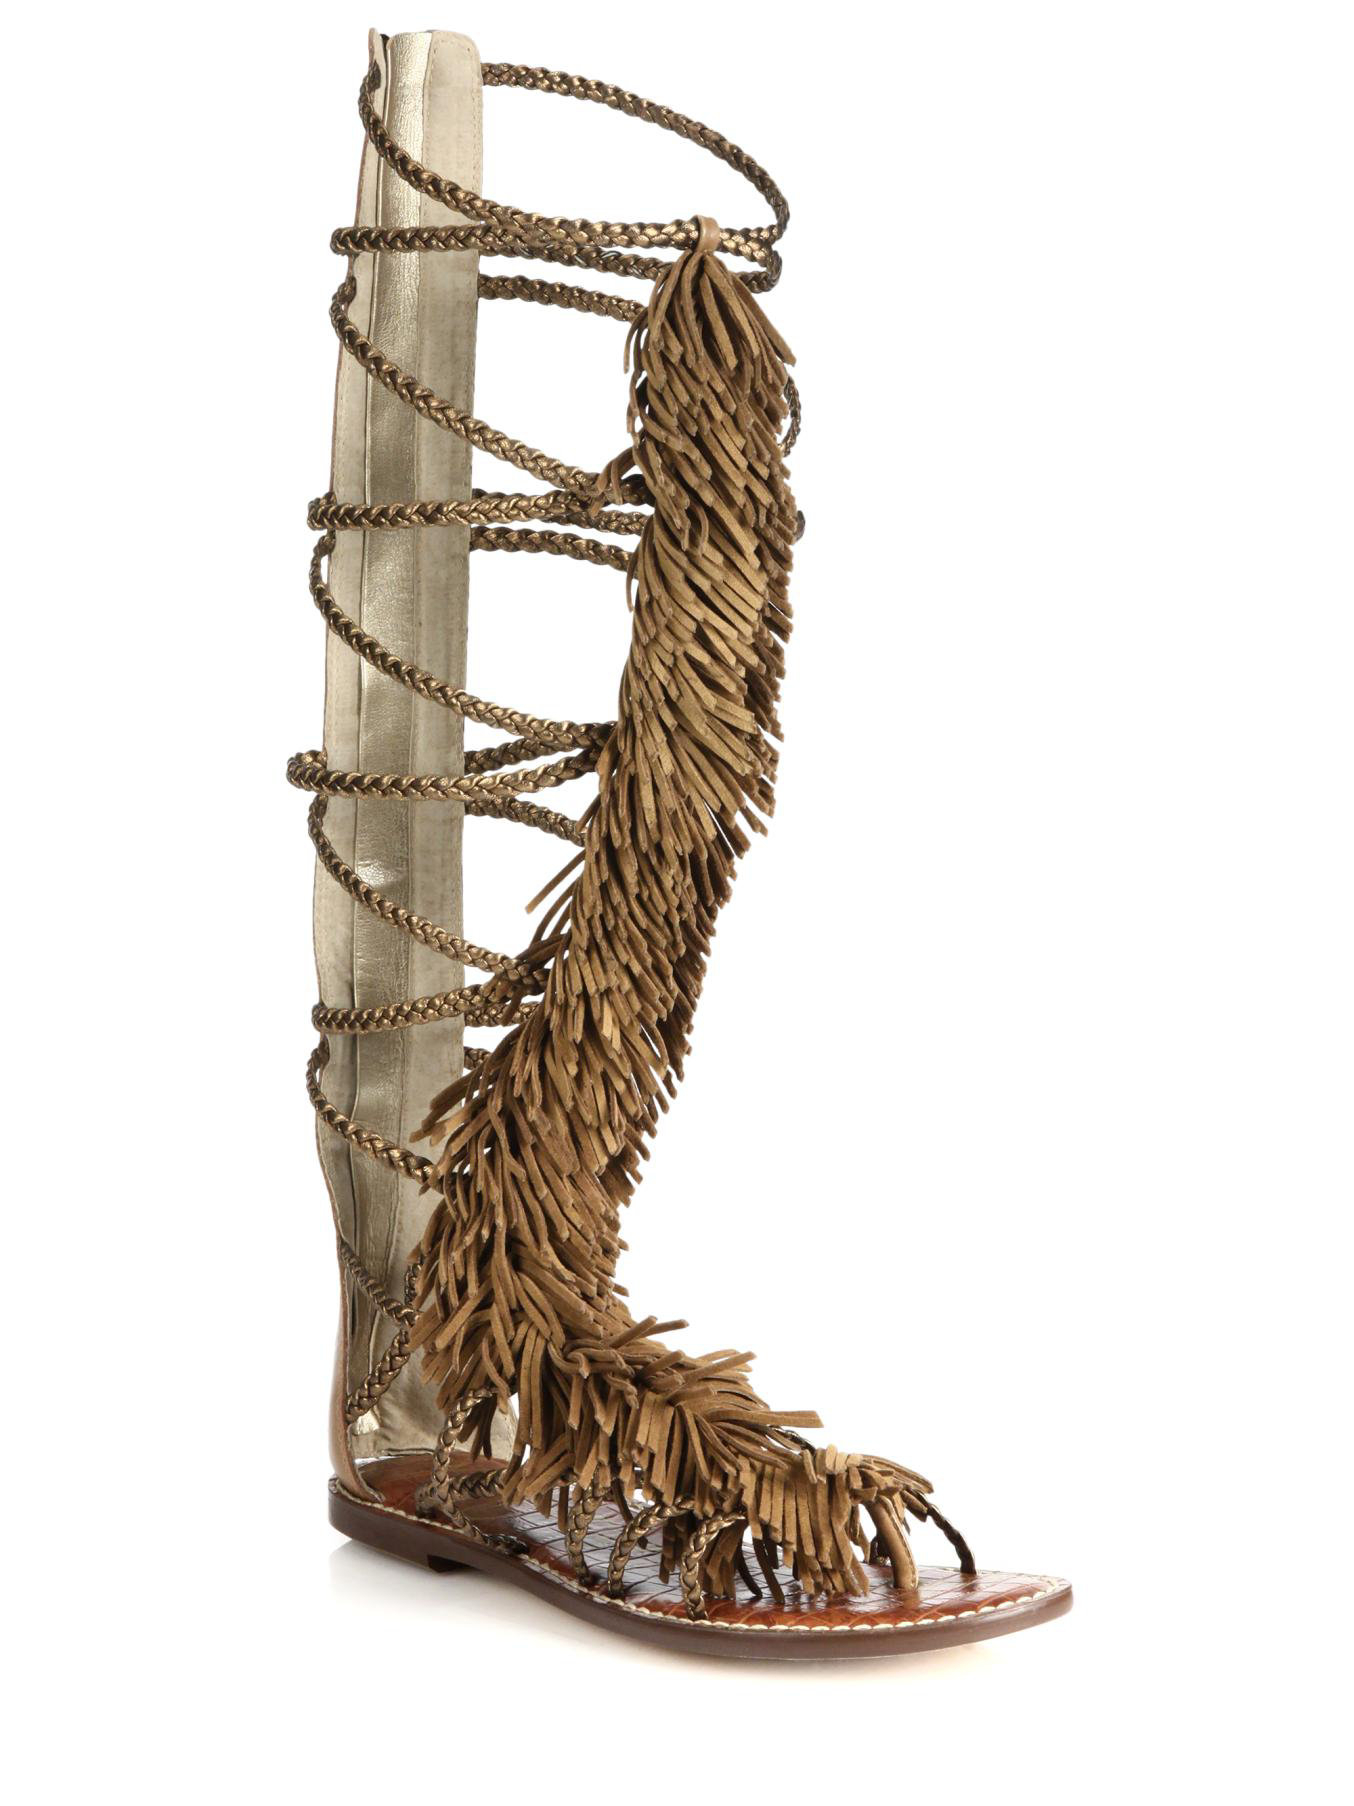 83cb56eb0 Lyst - Sam Edelman Gia Knee-High Fringed Metallic Leather Sandals in ...